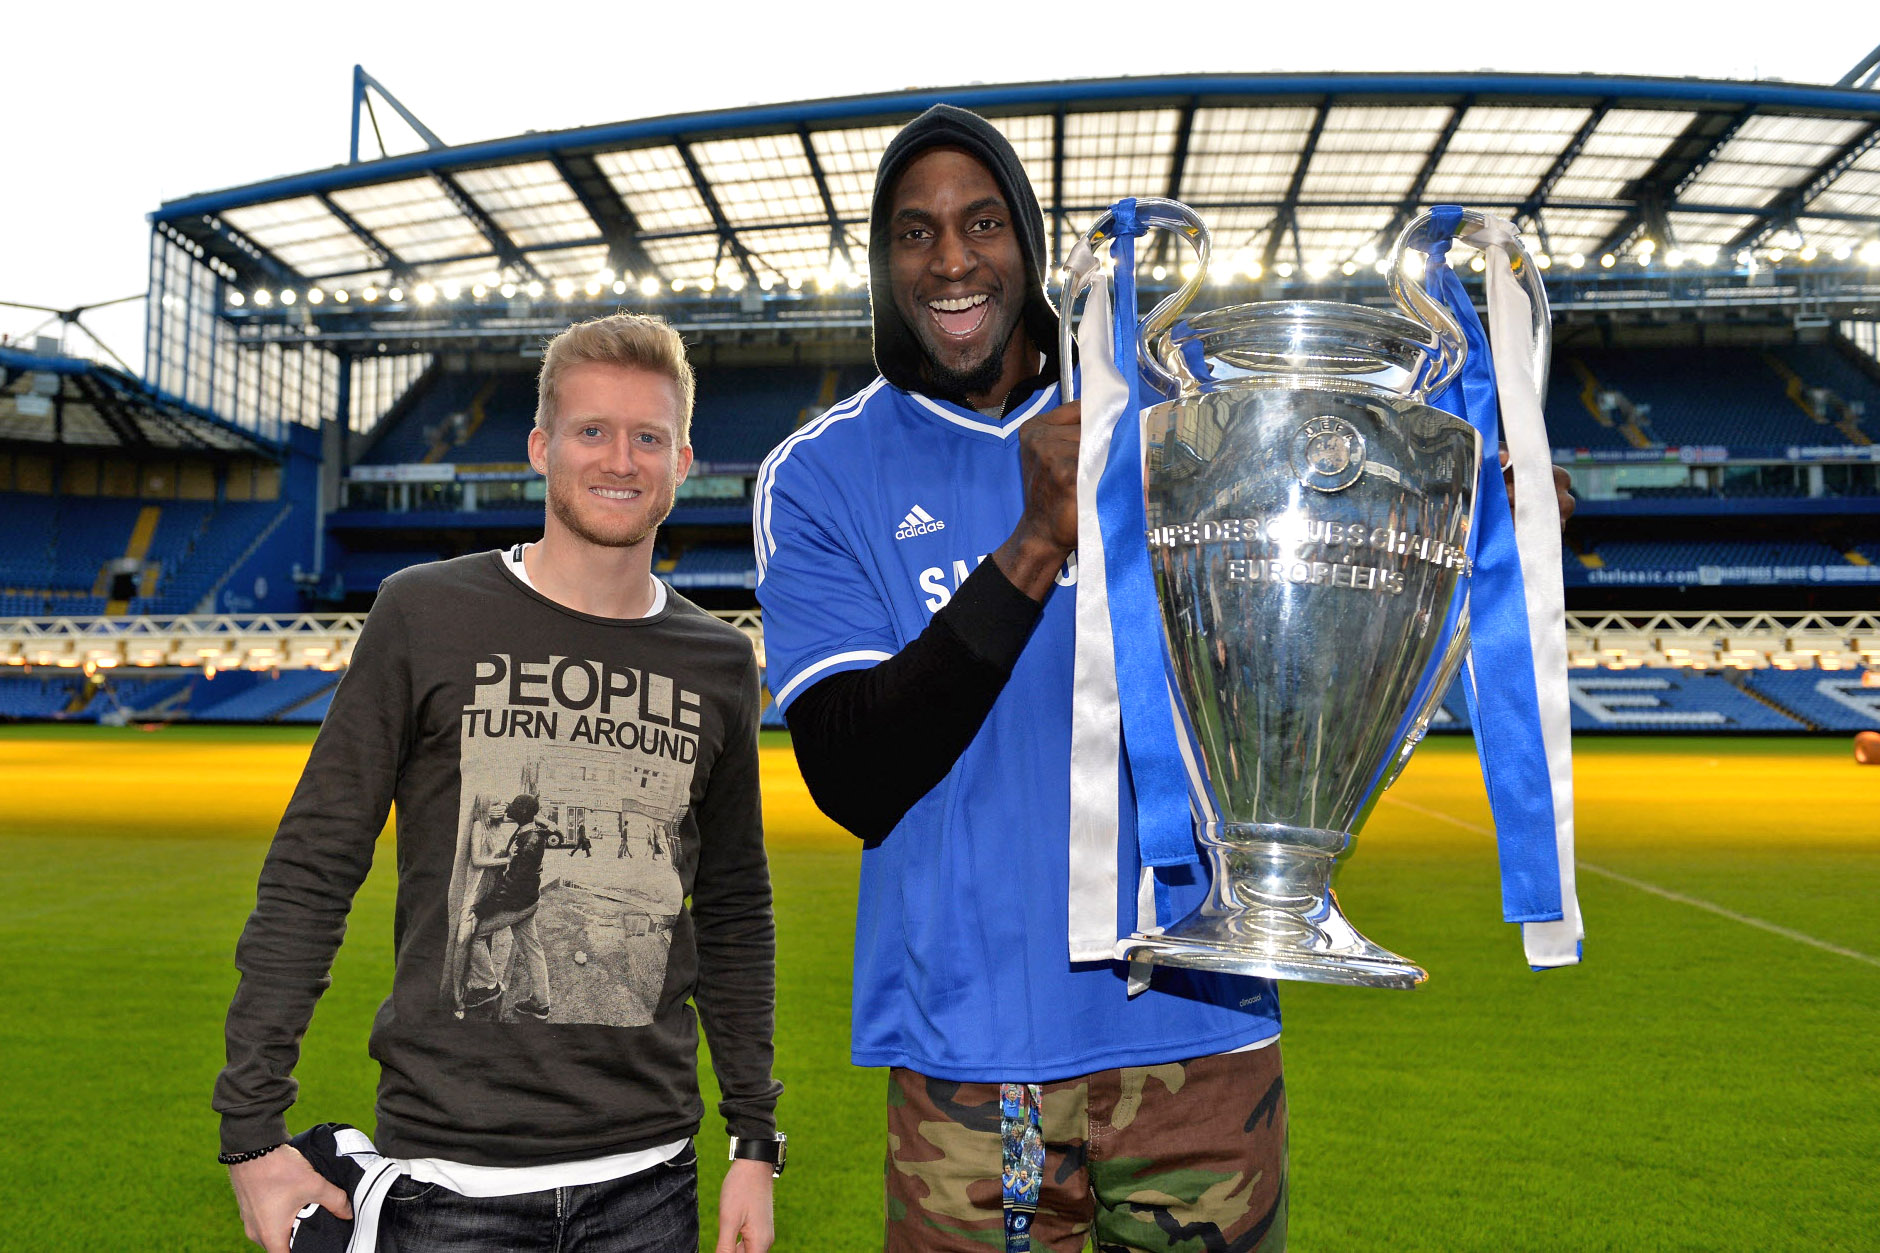 Chelsea FC via Press Association Images MINIMUM FEE 40GBP PER IMAGE - CONTACT PRESS ASSOCIATION IMAGES FOR FURTHER INFORMATION. Brooklyn Nets and Chelsea fan Kevin Garnett meets Chelsea's Andre Schurrle at Stamford Bridge on 14th January 2014 in London, England.